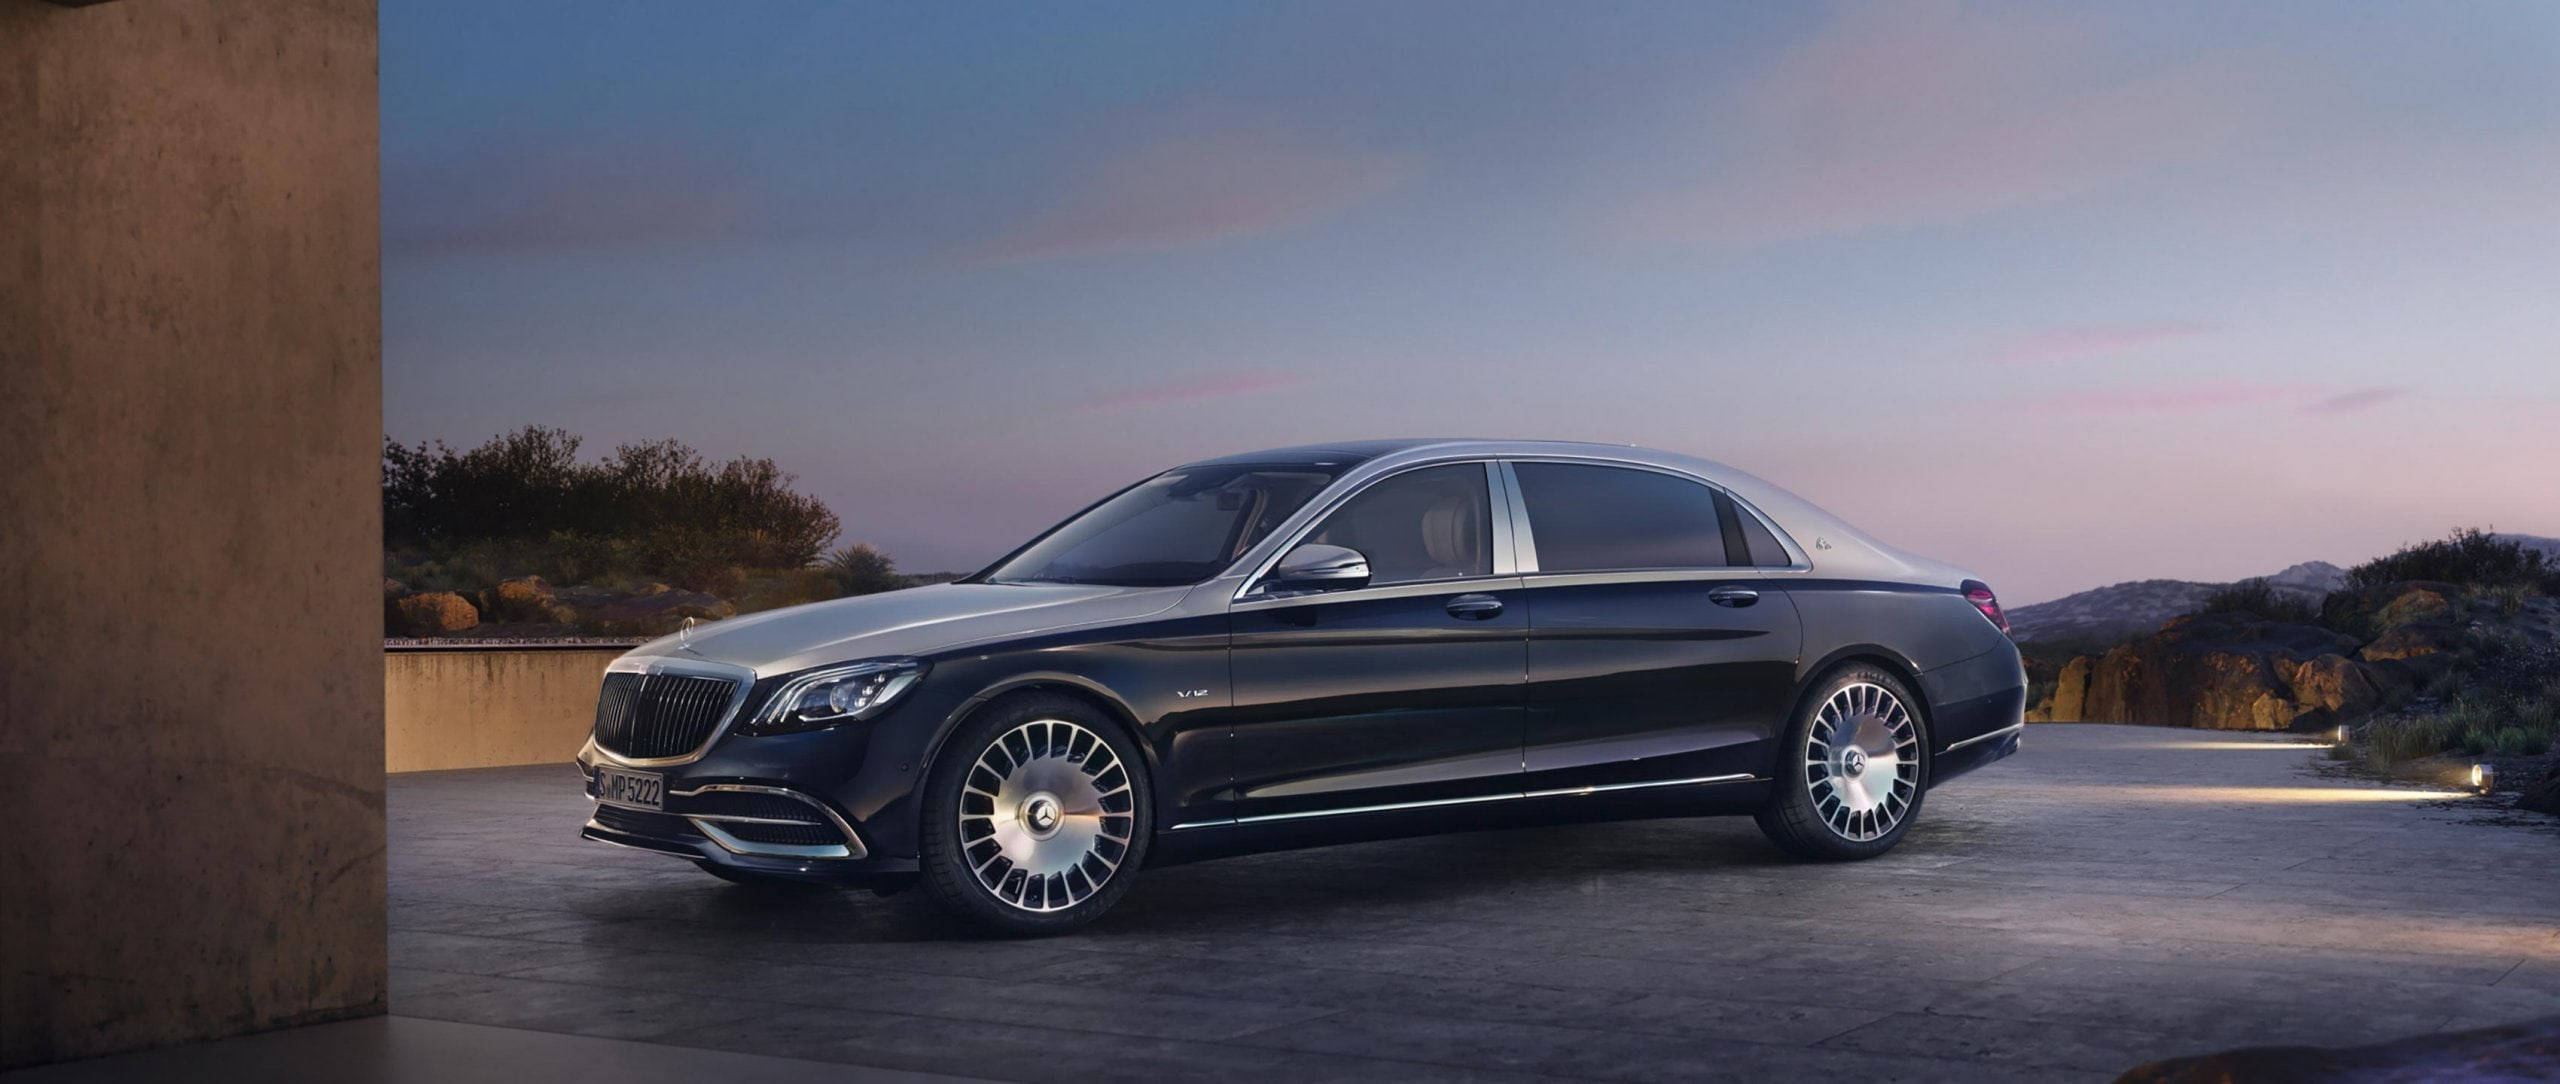 Mercedes-Benz: The Mercedes-Maybach S-Class (X 222) – The S 650 with V12 biturbo engine and two-tone paintwork in Aragonite silver/anthracite blue.